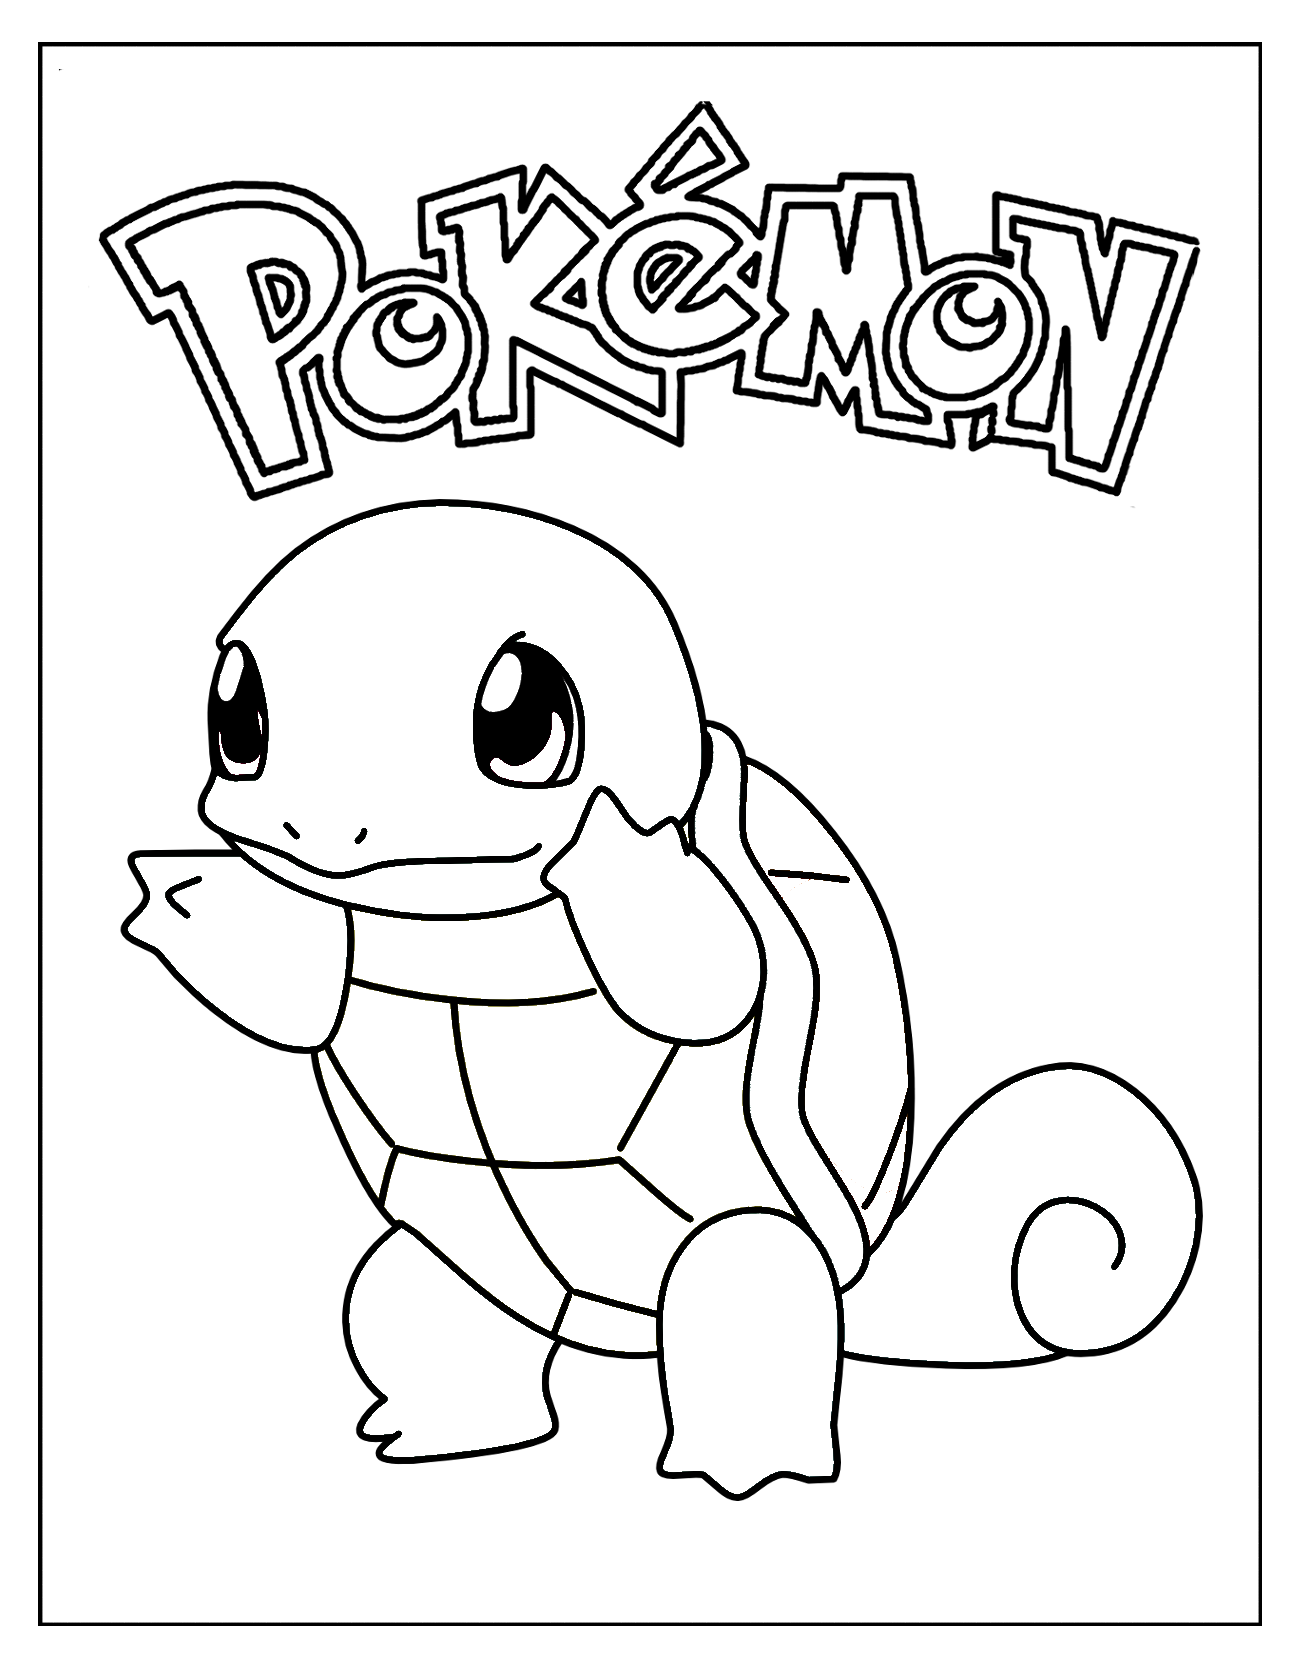 squirtle coloring page squirtle coloring pages to download and print for free squirtle coloring page